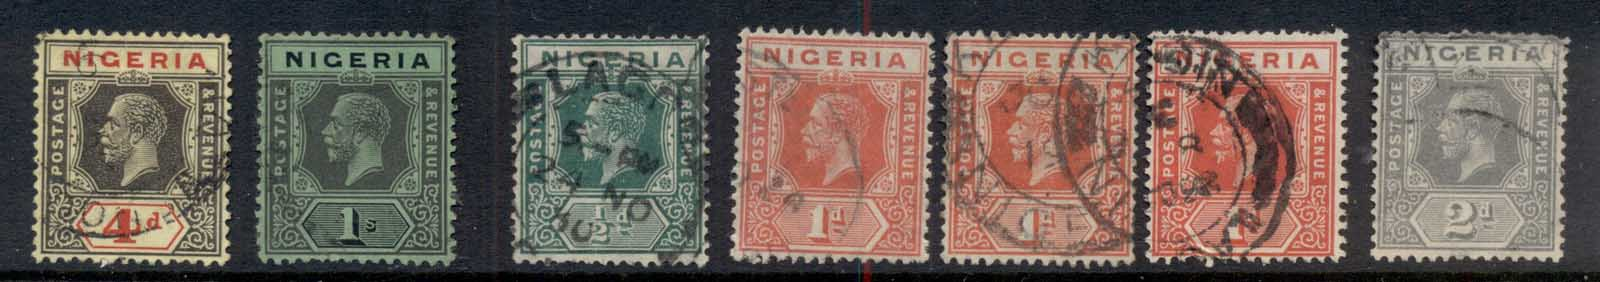 Nigeria 1914 on Asst KGV keyplates FU